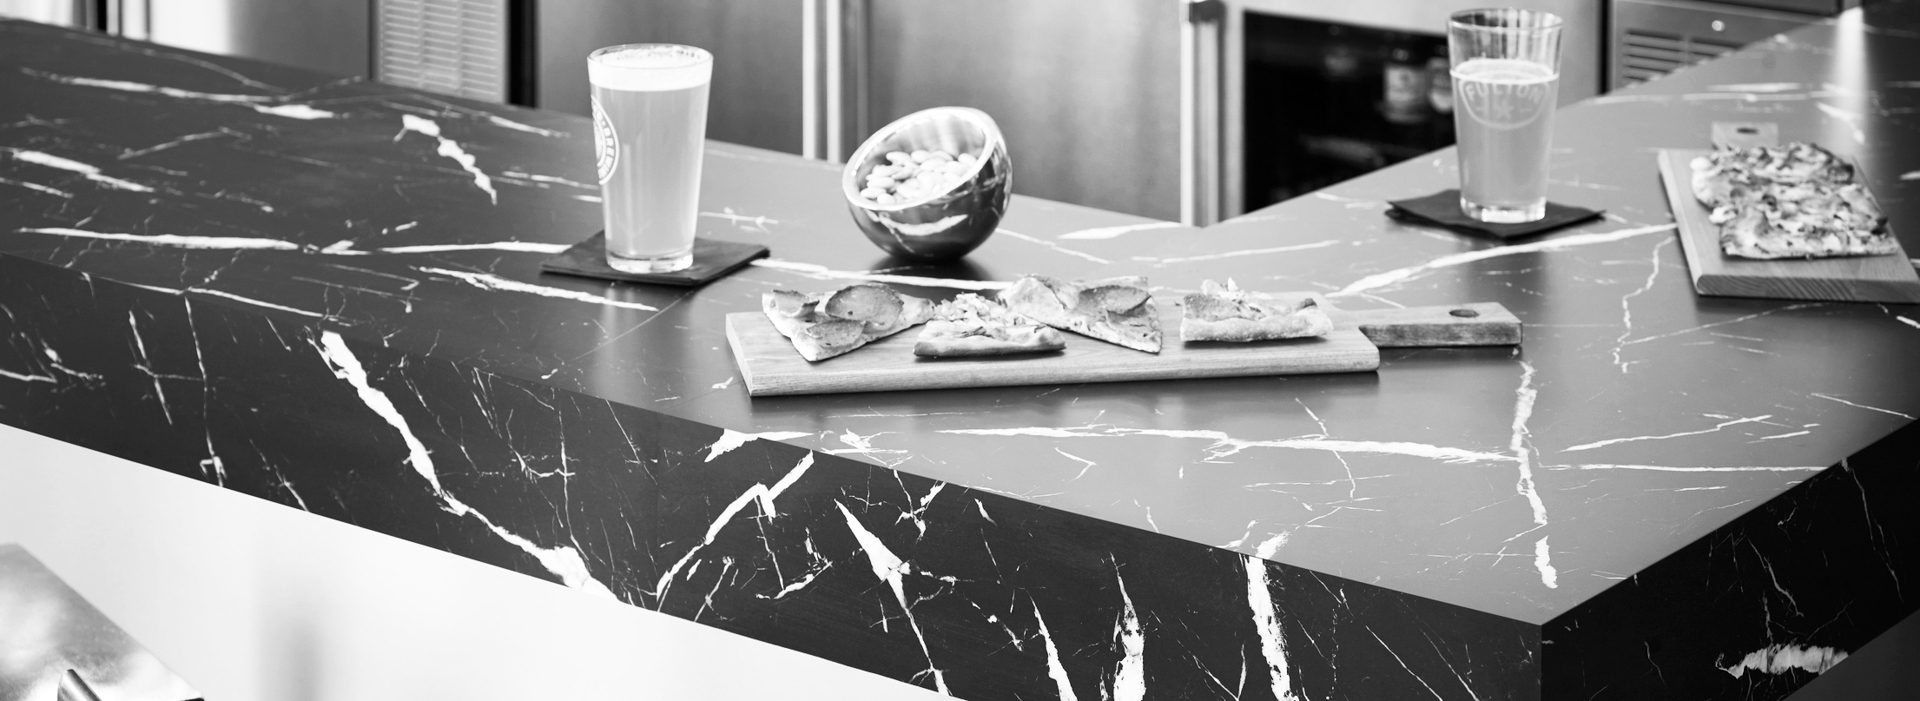 Bar 180fx® Laminate by Formica Group 7403-11 Nero Marquina, DecoMetal® metal laminate M2042 Brasstoned Brushed Aluminum